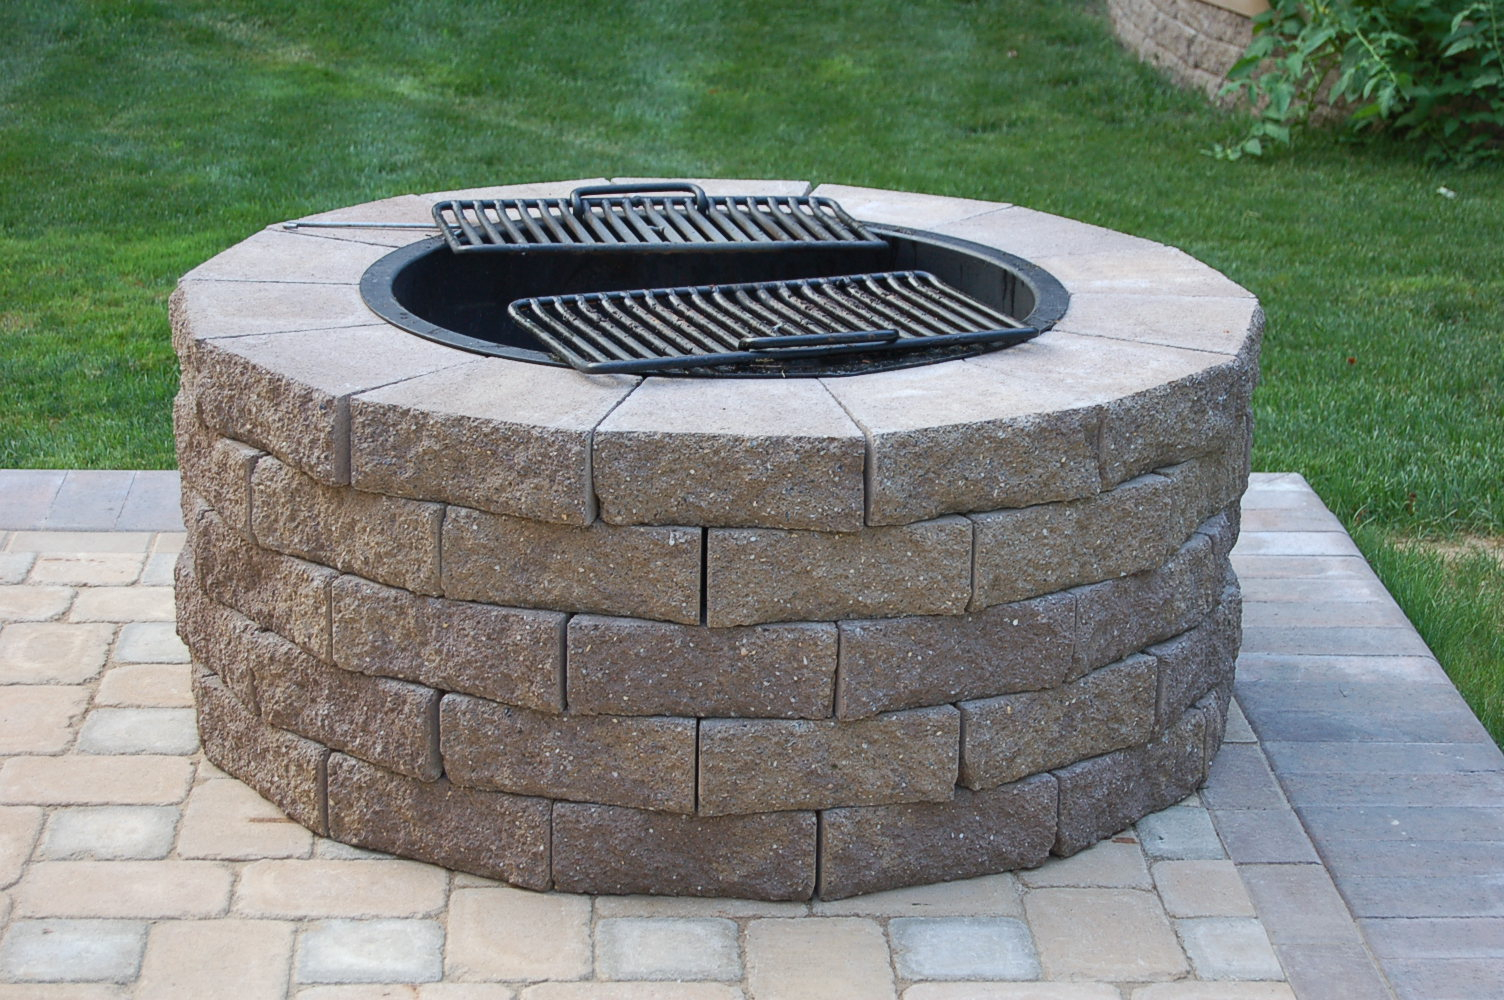 Fire Pit Cooking Grate Fireplace Design Ideas throughout size 1504 X 1000